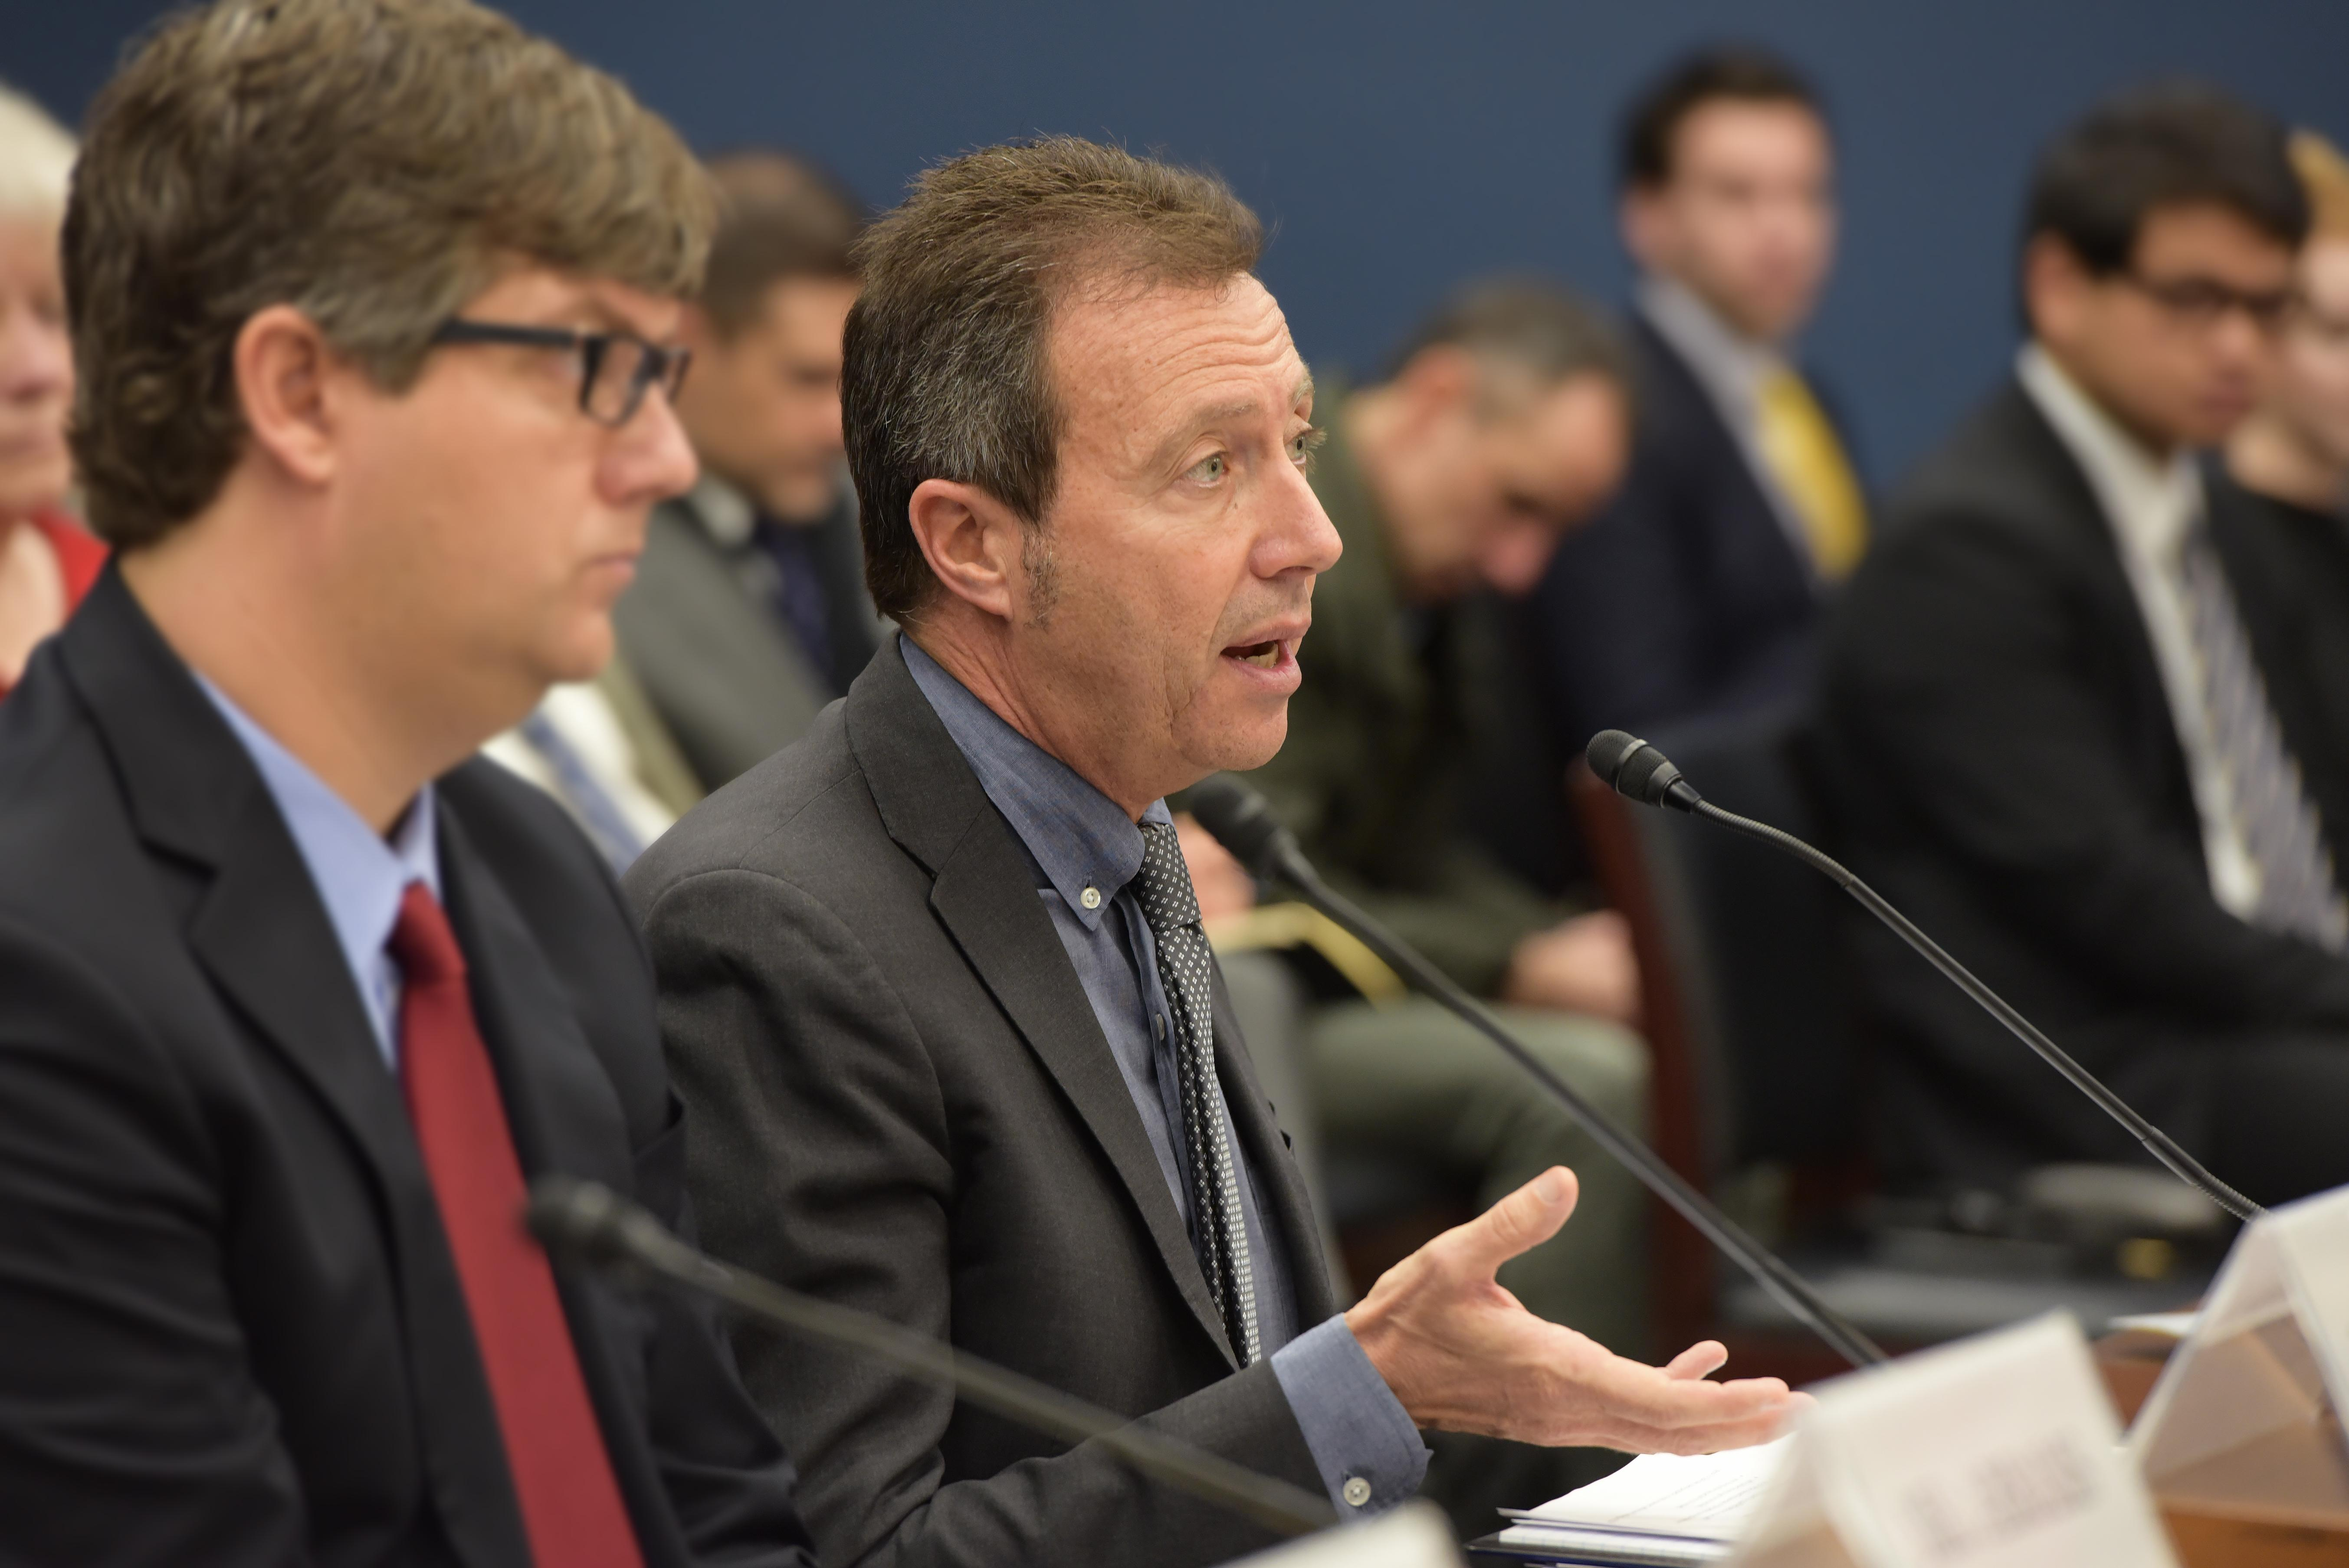 Daniel Goldstein testifies on behalf of The ESOP Association at the Feb. 12, 2020 House Small Business Committee Hearing on Challenges and Benefits of Employee-owned Small Businesses.